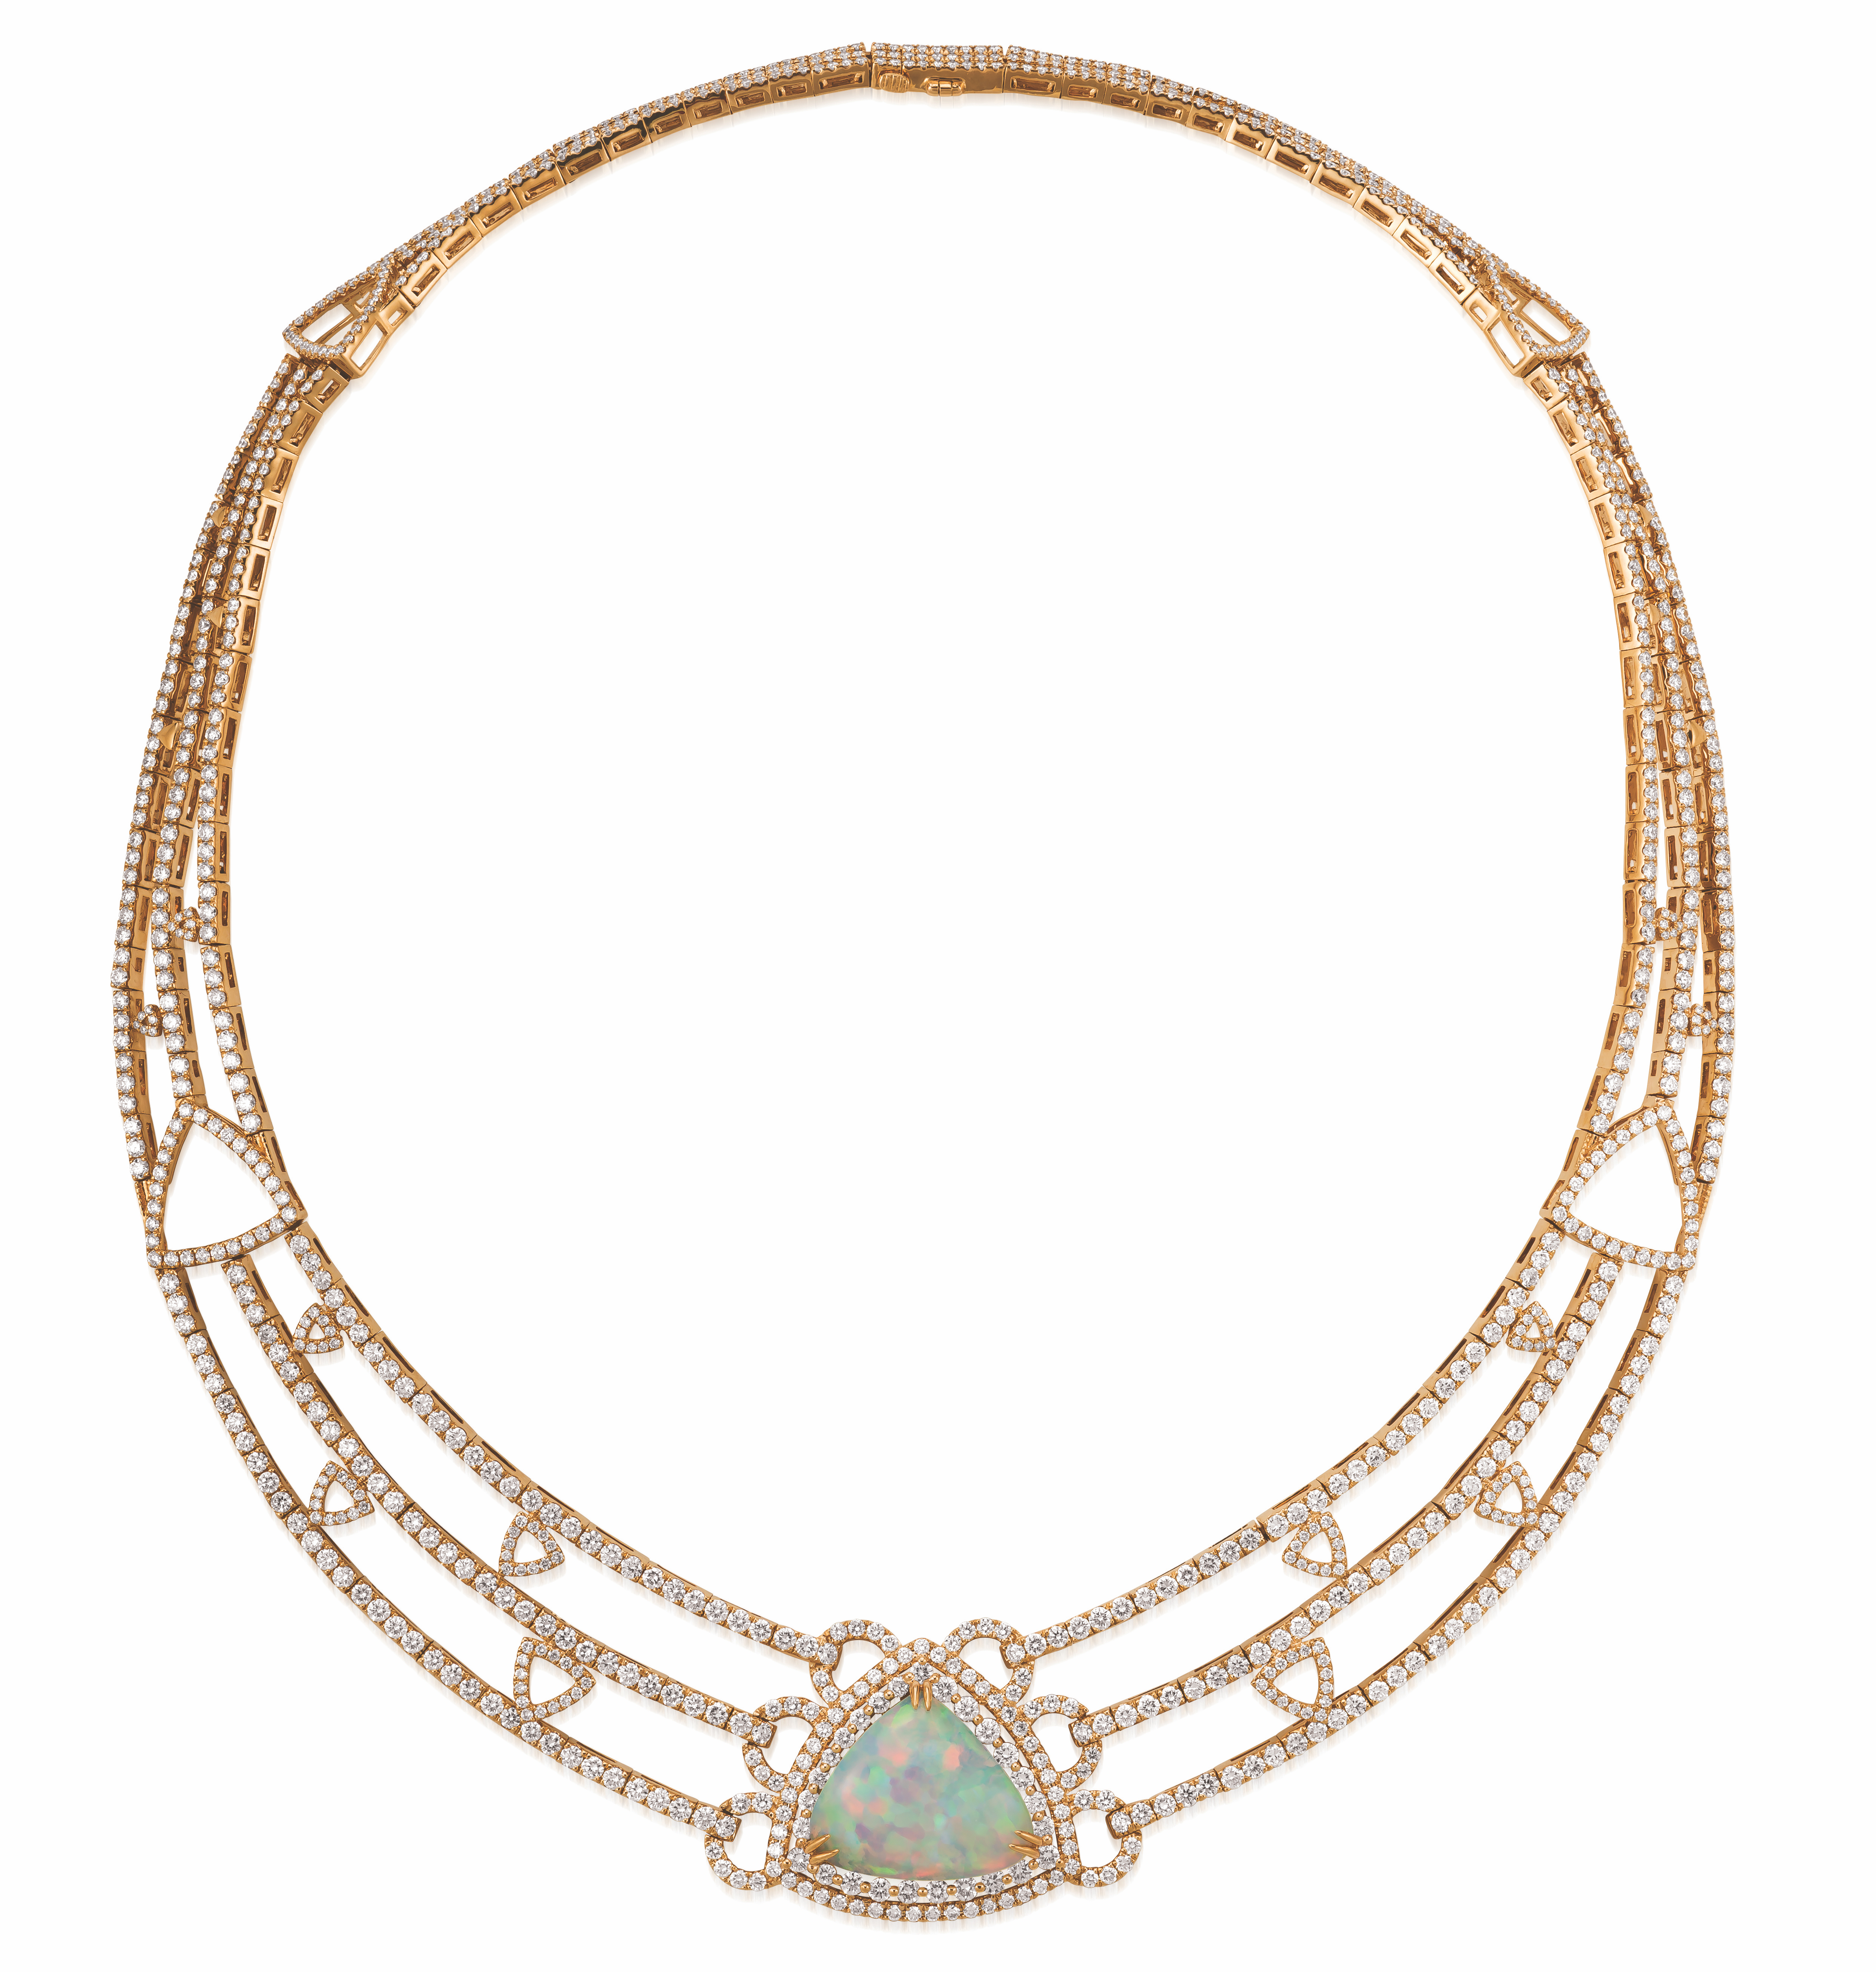 Le Vian Naopolitan Opal collar necklace #BRITTSPICK | JCK On Your Market